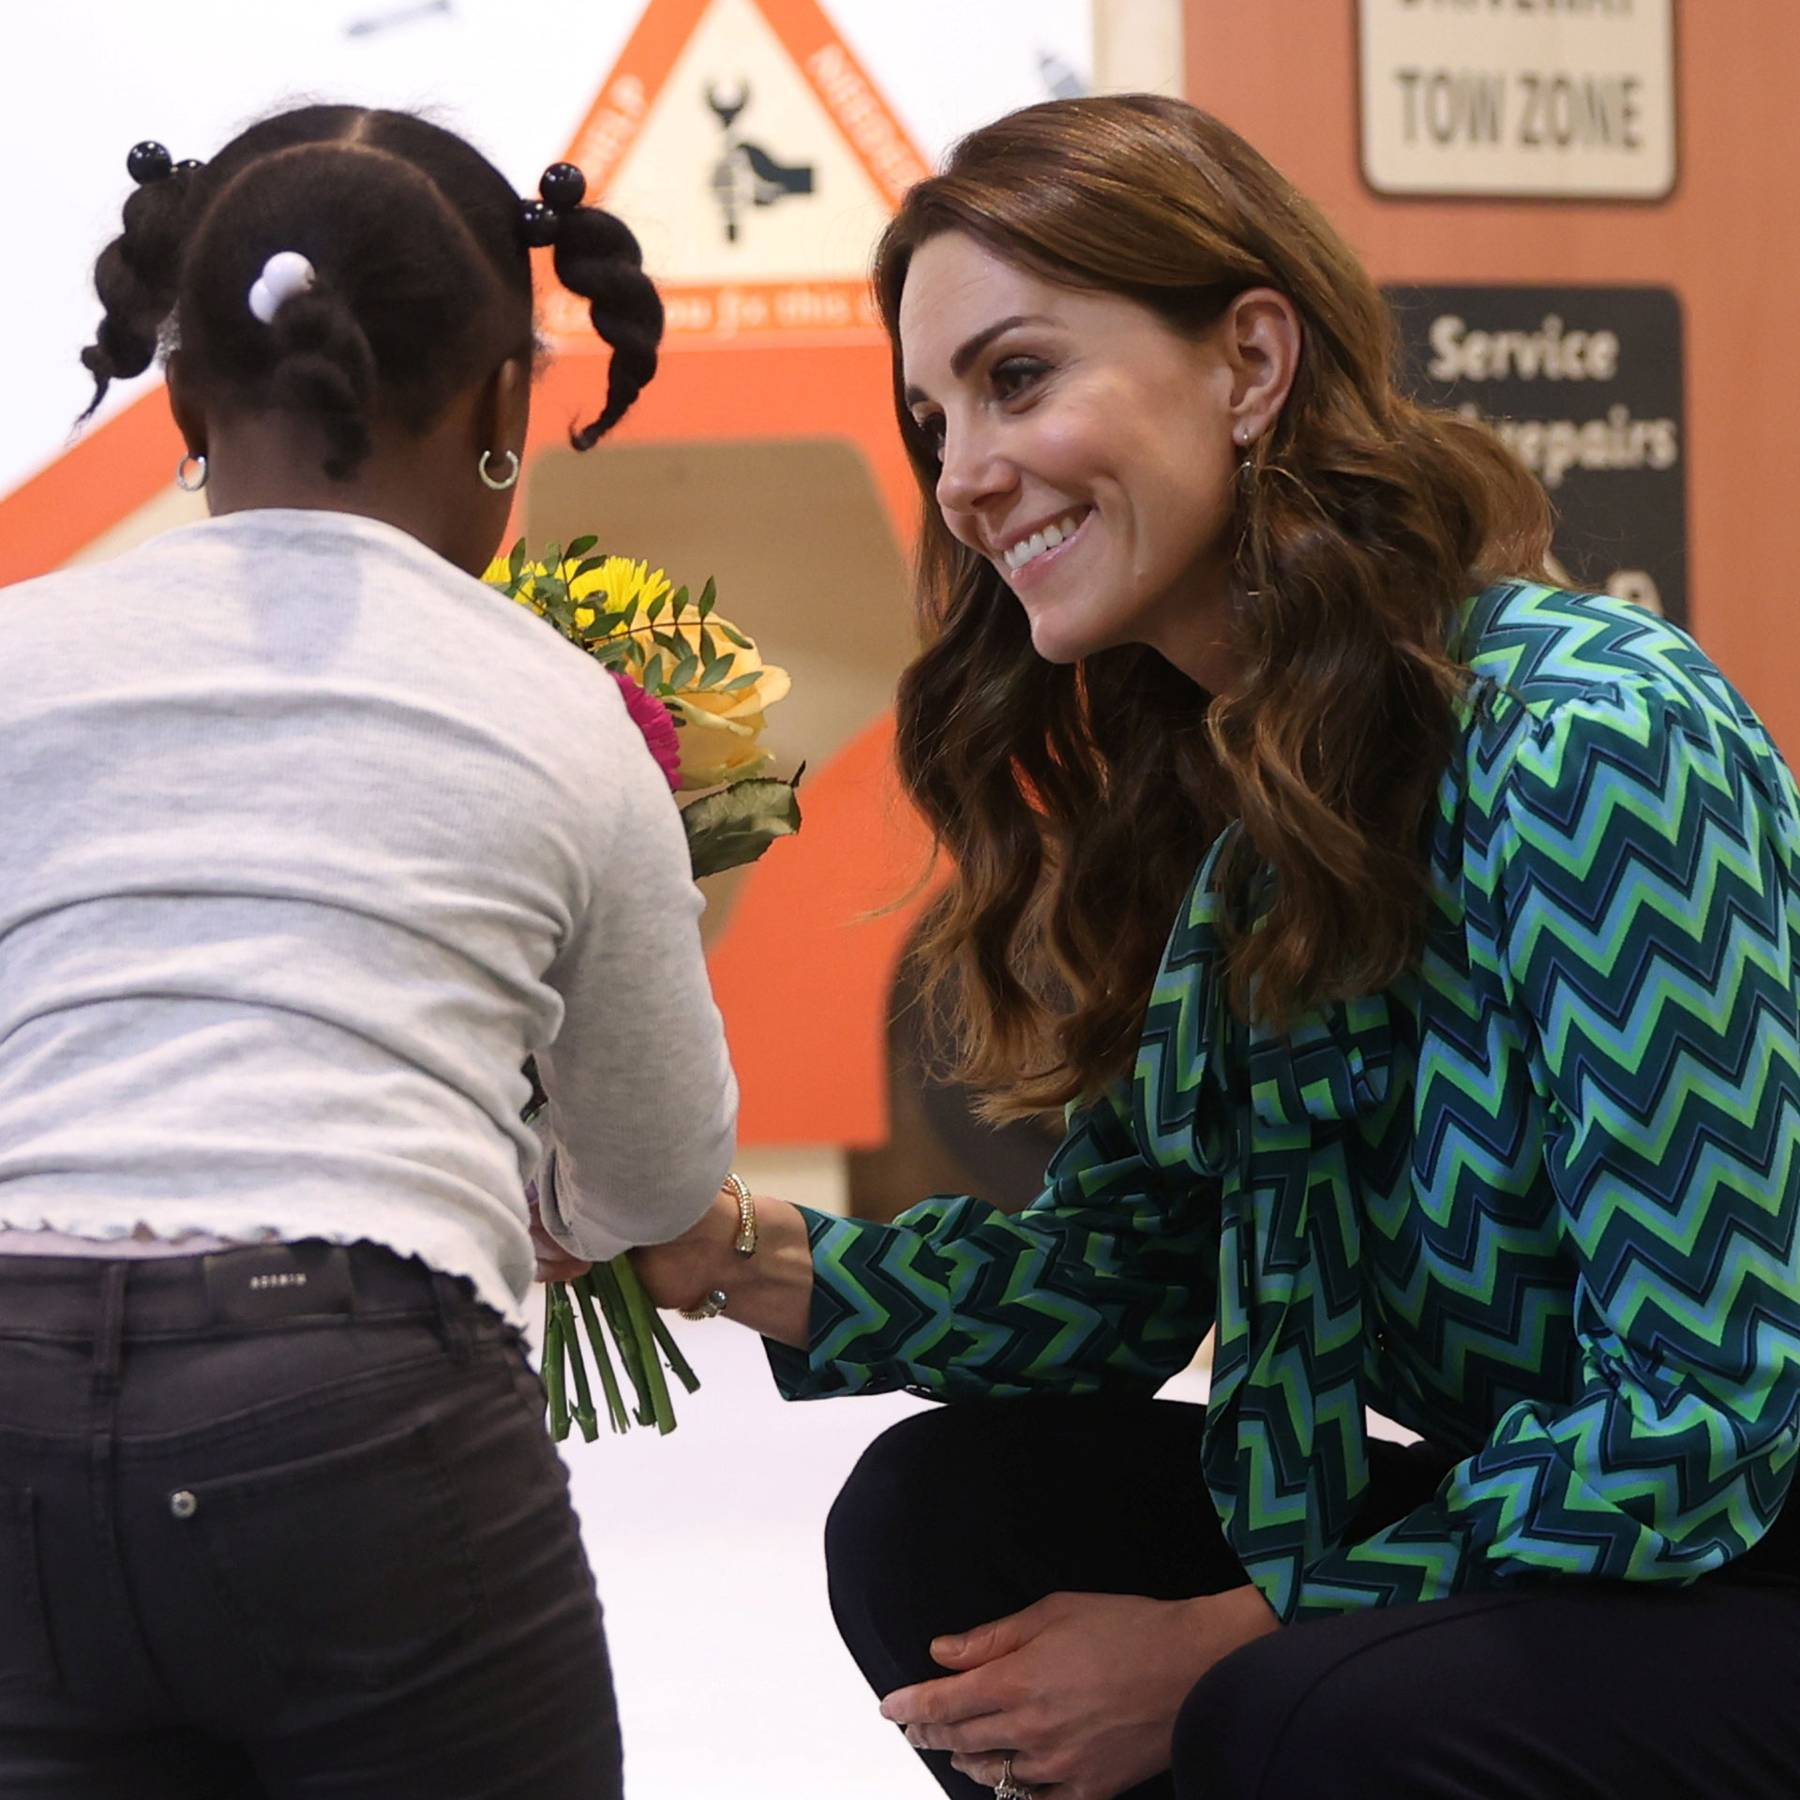 The Duchess of Cambridge has just launched a landmark study on childhood